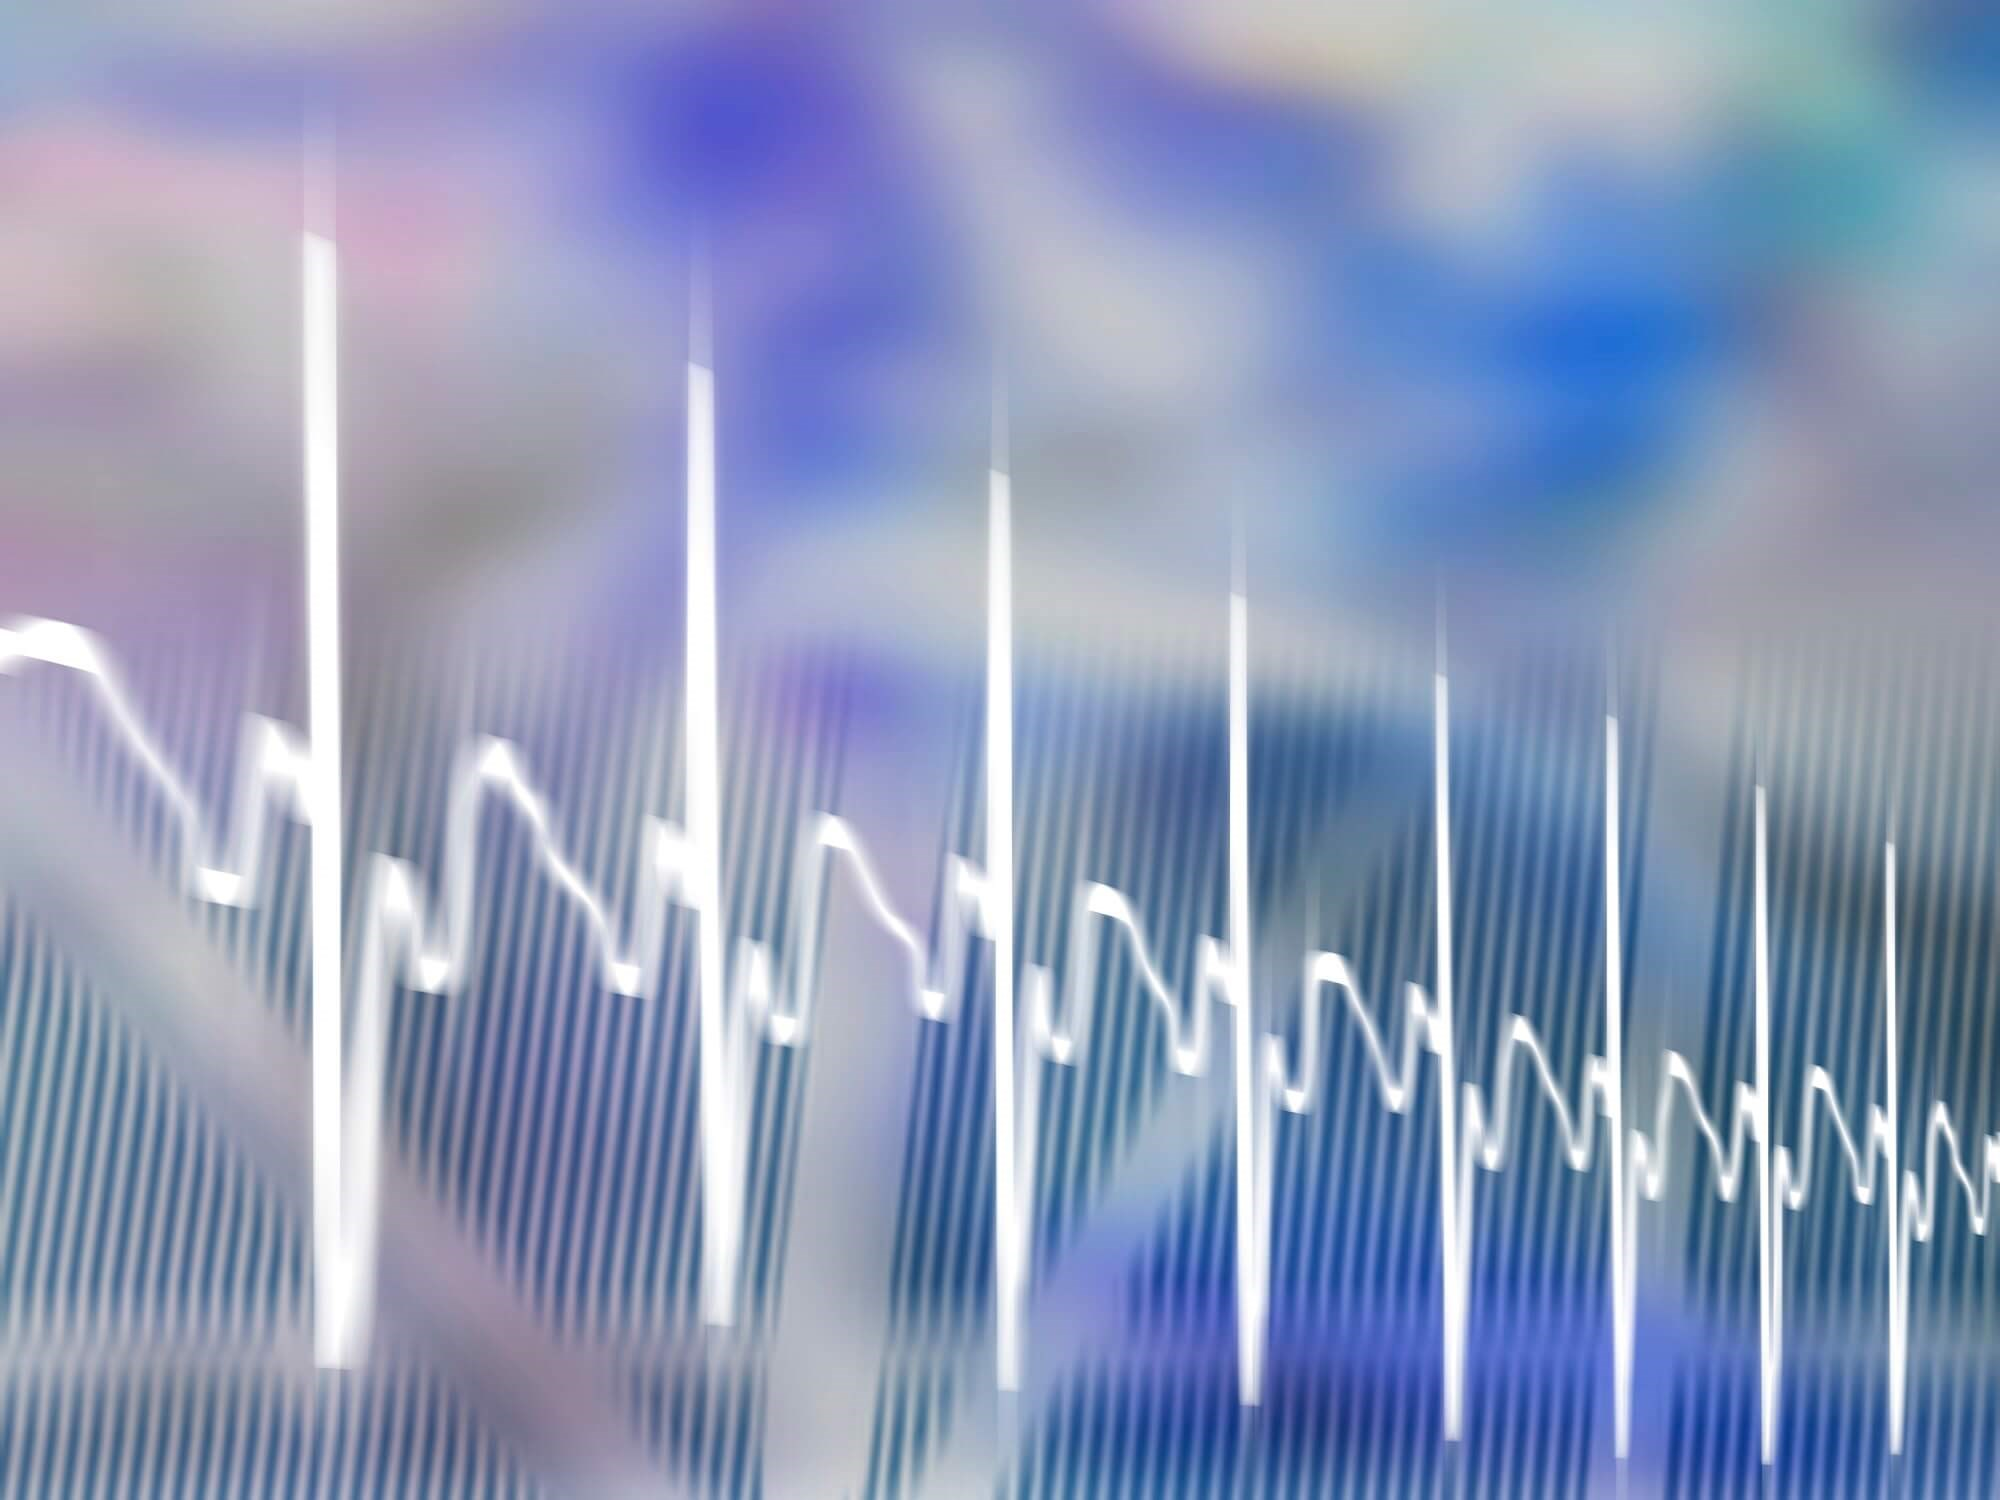 Artificial Intelligence-Enabled ECG May Screen for Asymptomatic LV Dysfunction